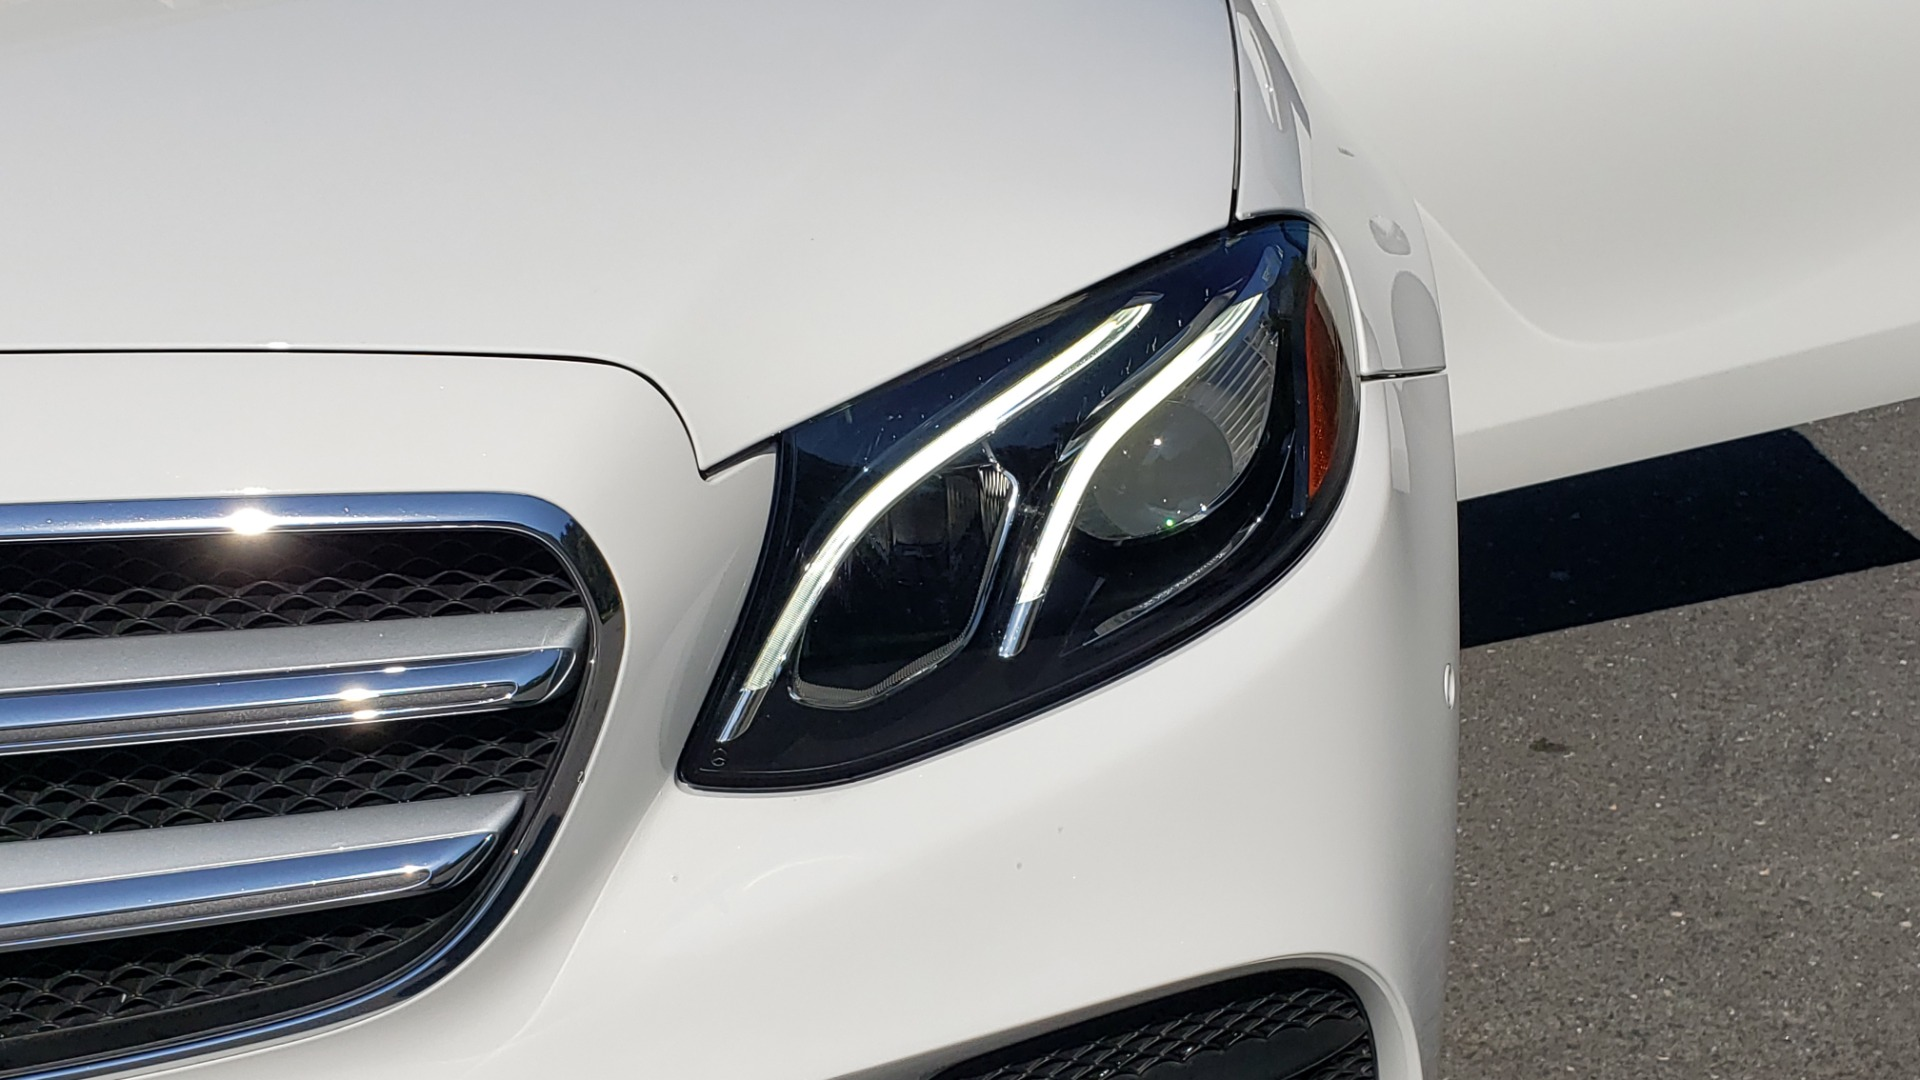 Used 2017 Mercedes-Benz E-Class E 300 PREMIUM / RWD / NAV / SNF / PARKING PILOT / REARVIEW / BURMESTER for sale Sold at Formula Imports in Charlotte NC 28227 22